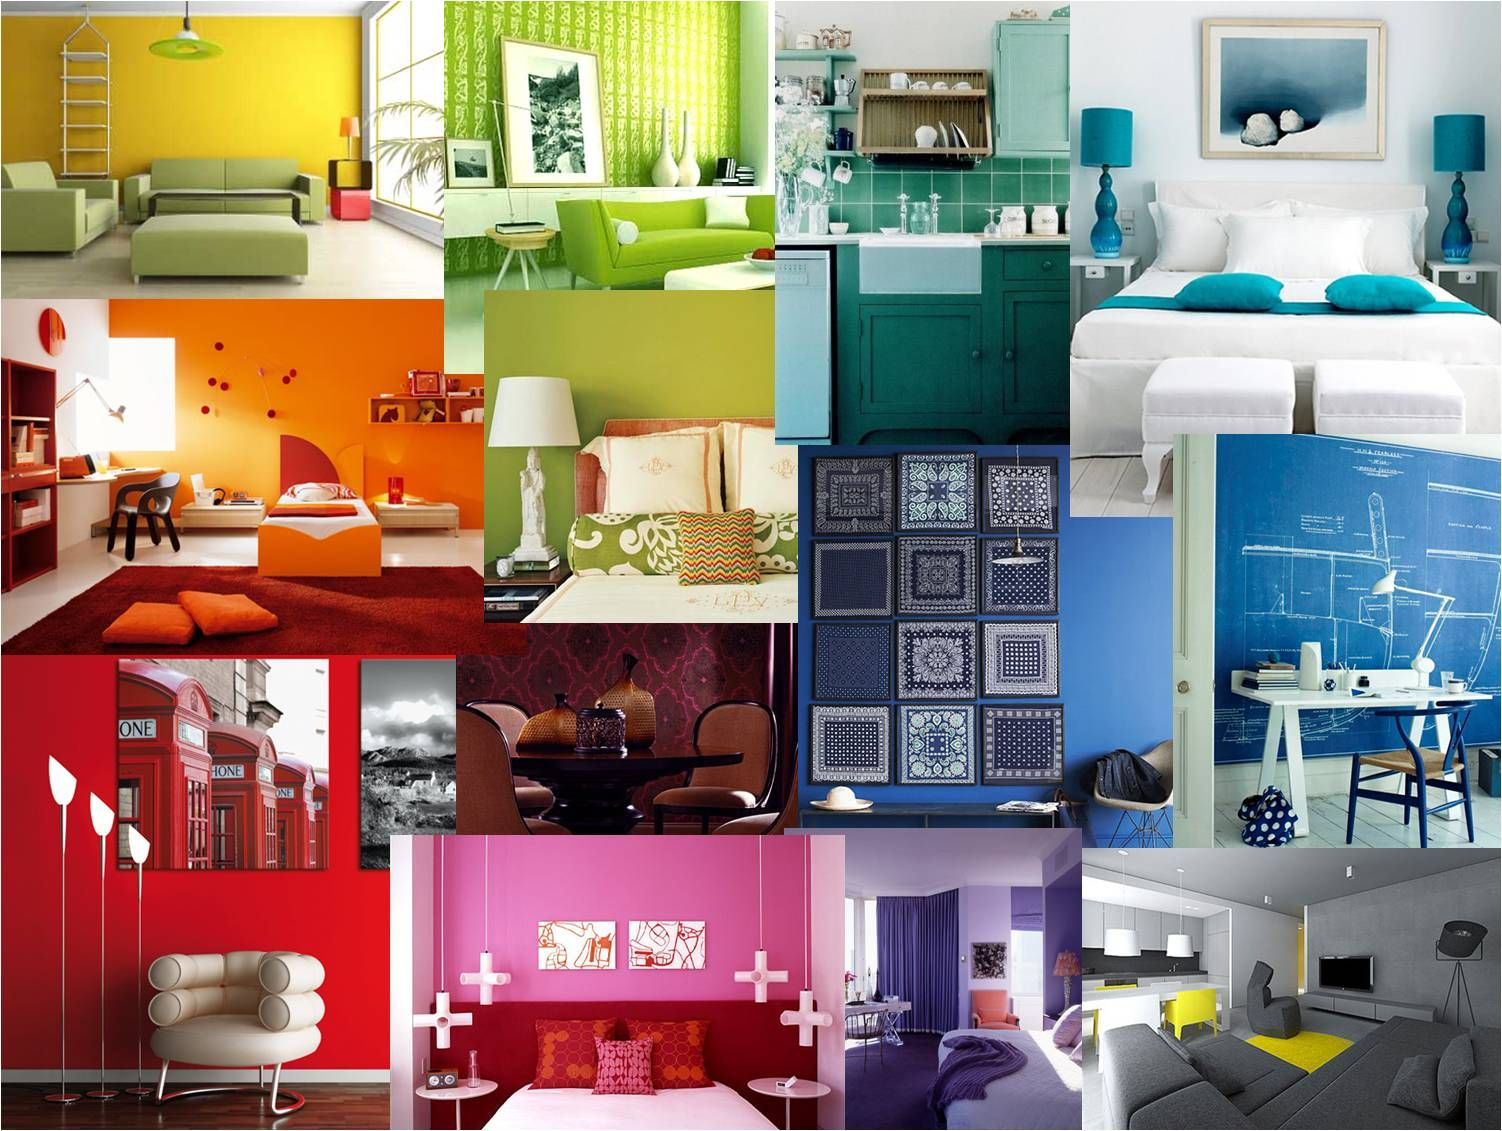 Discover how colour through interior design can influence your mood